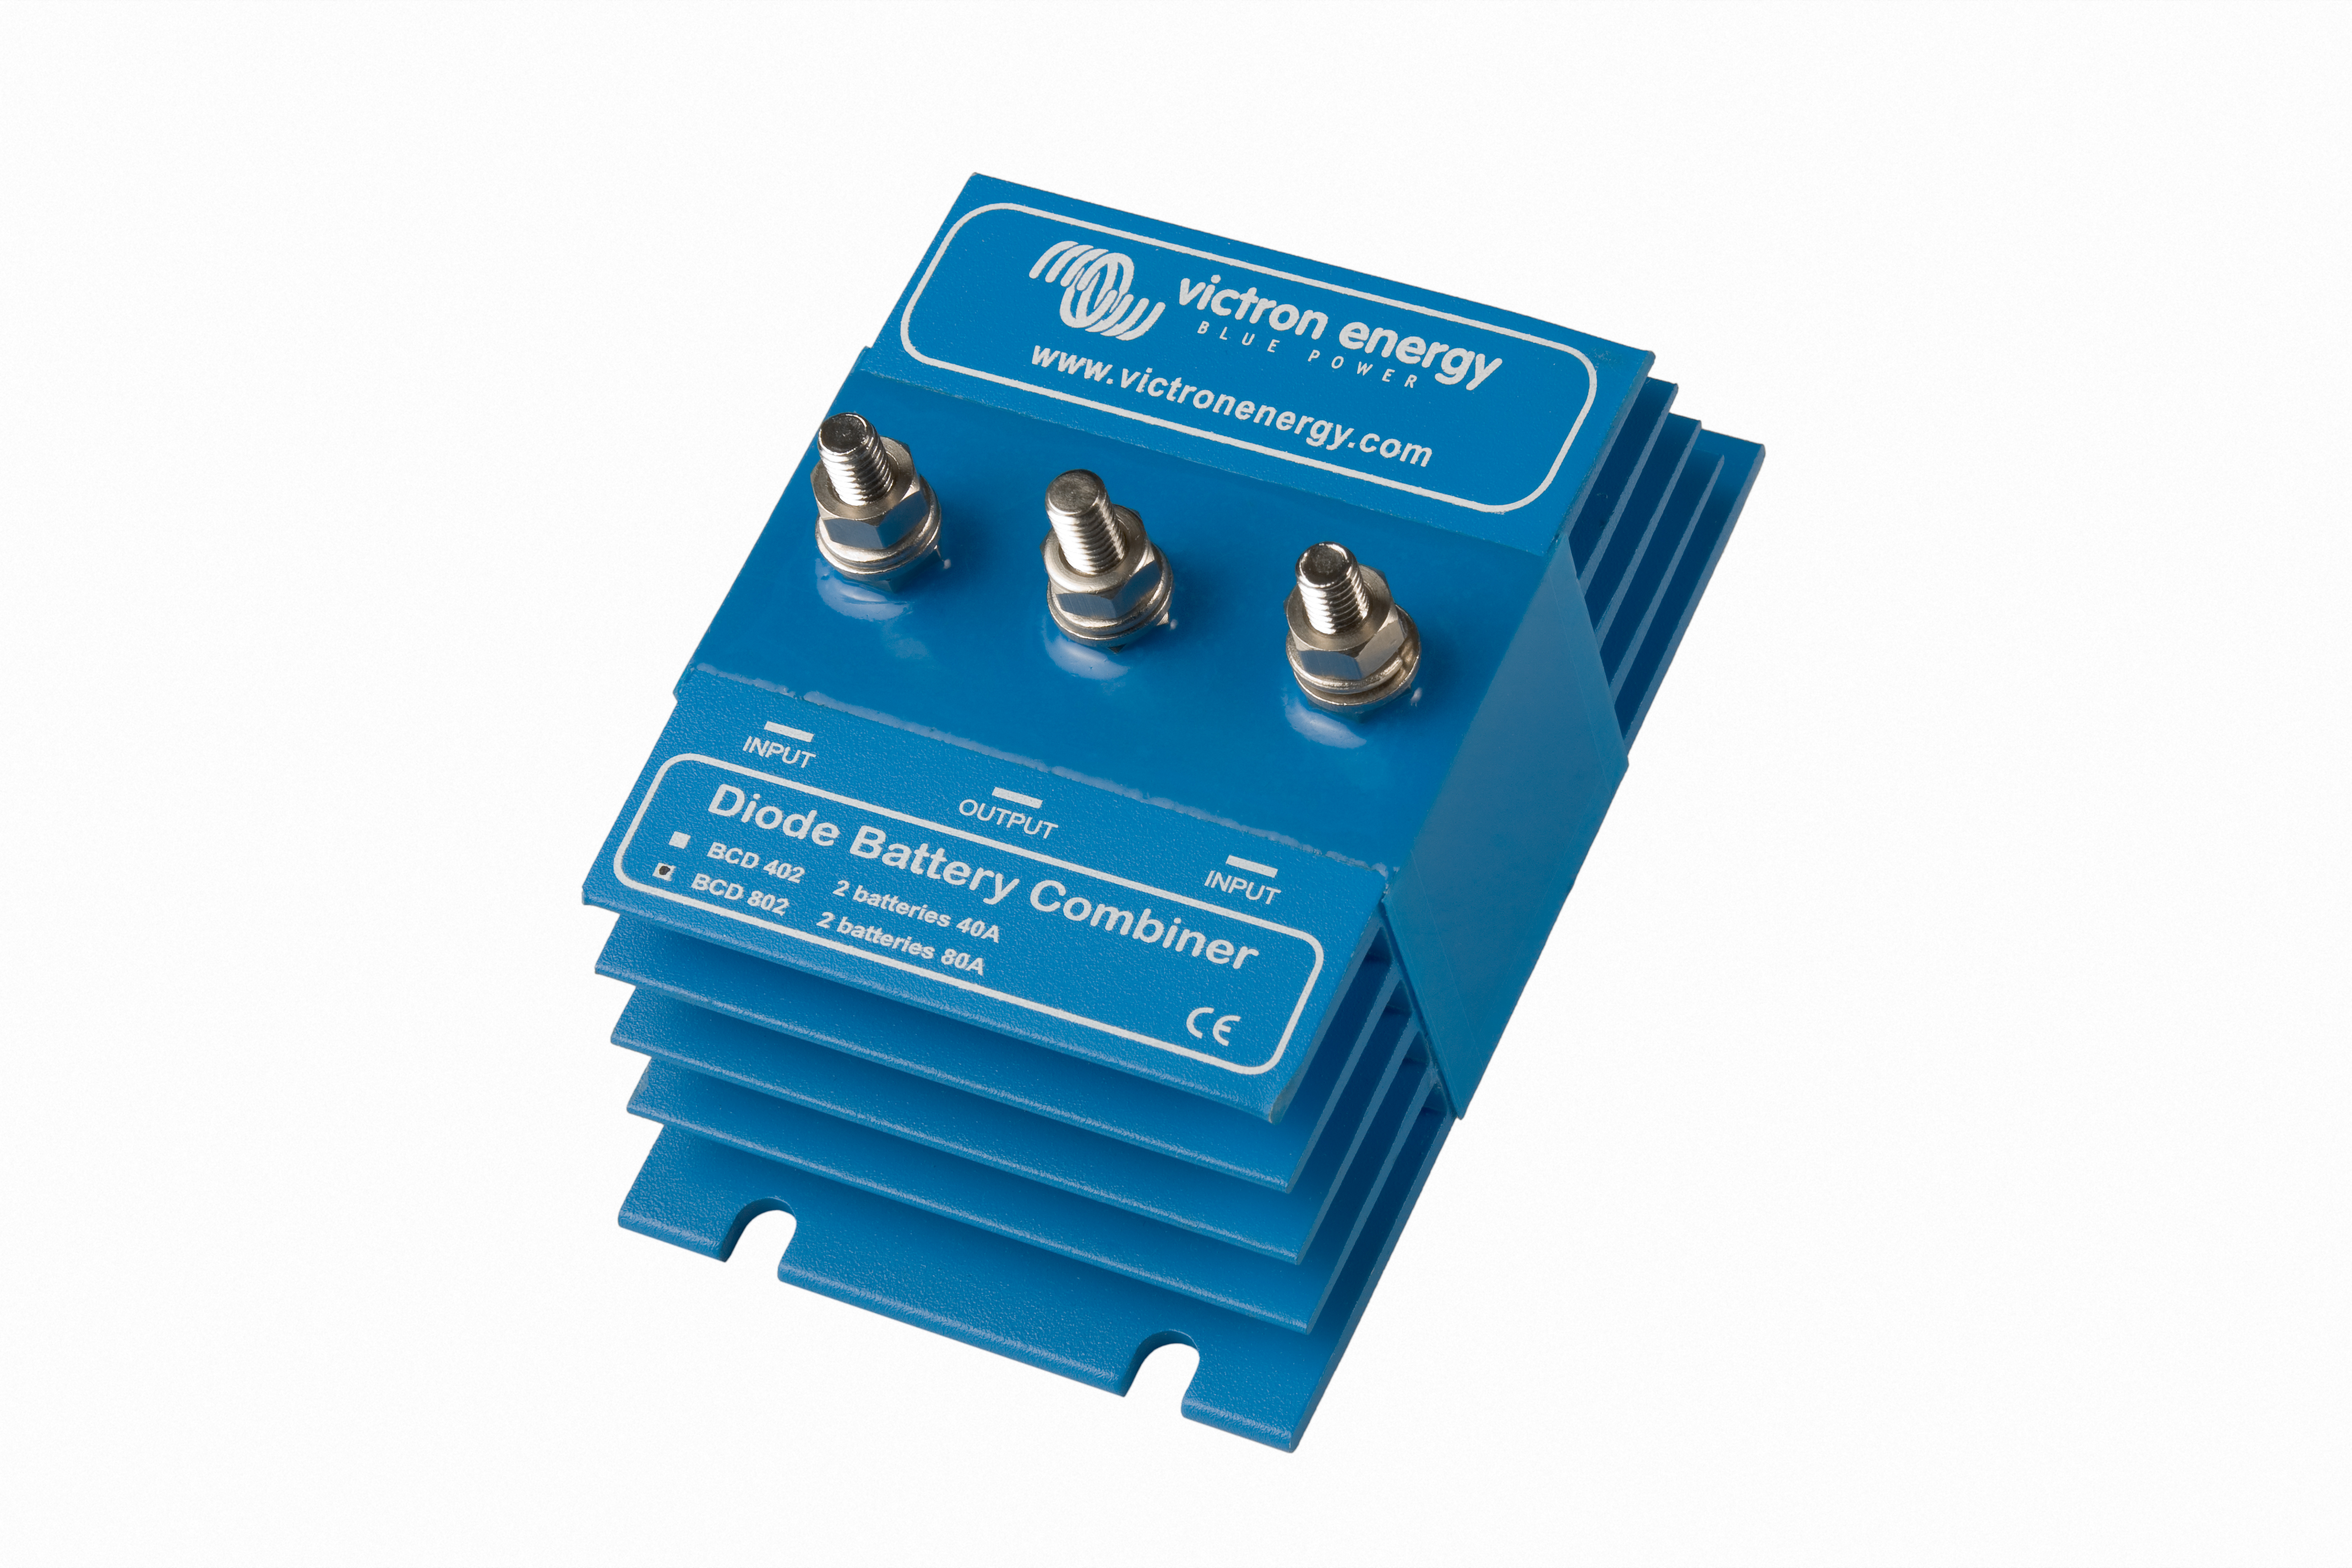 Argo Diode Battery Combiners Victron Energy